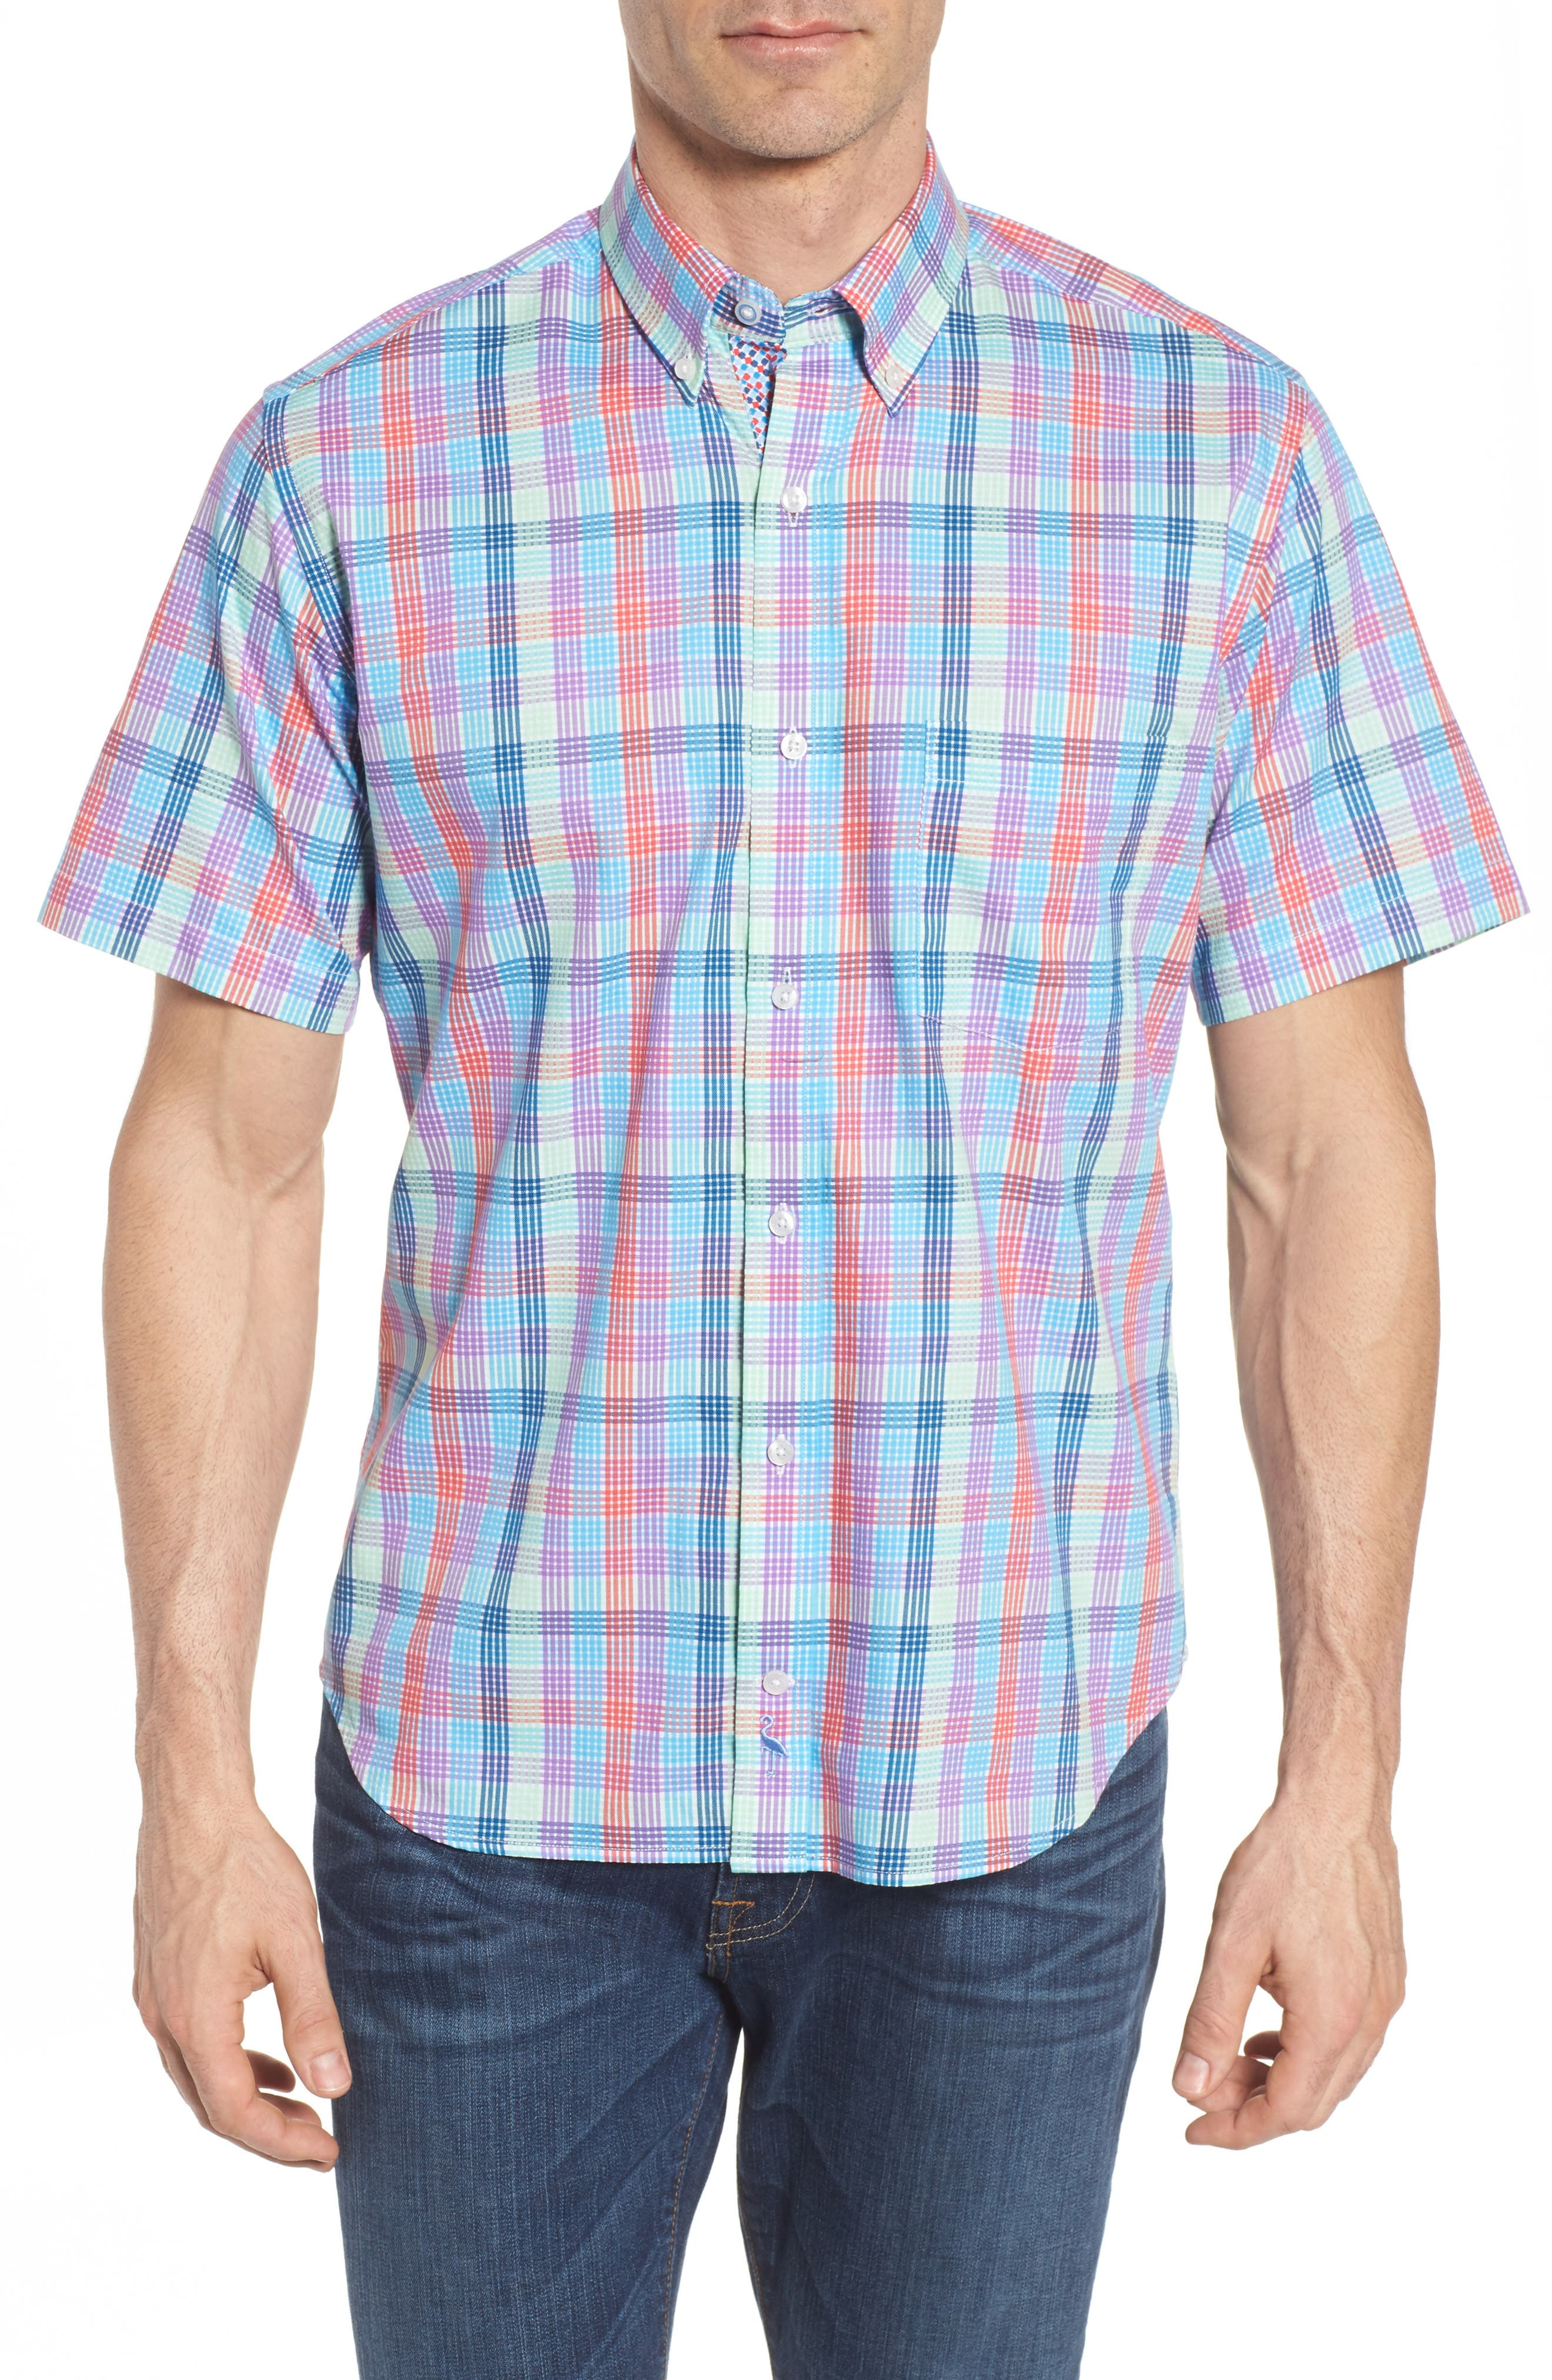 TailorByrd Slidell Regular Fit Check Sport Shirt